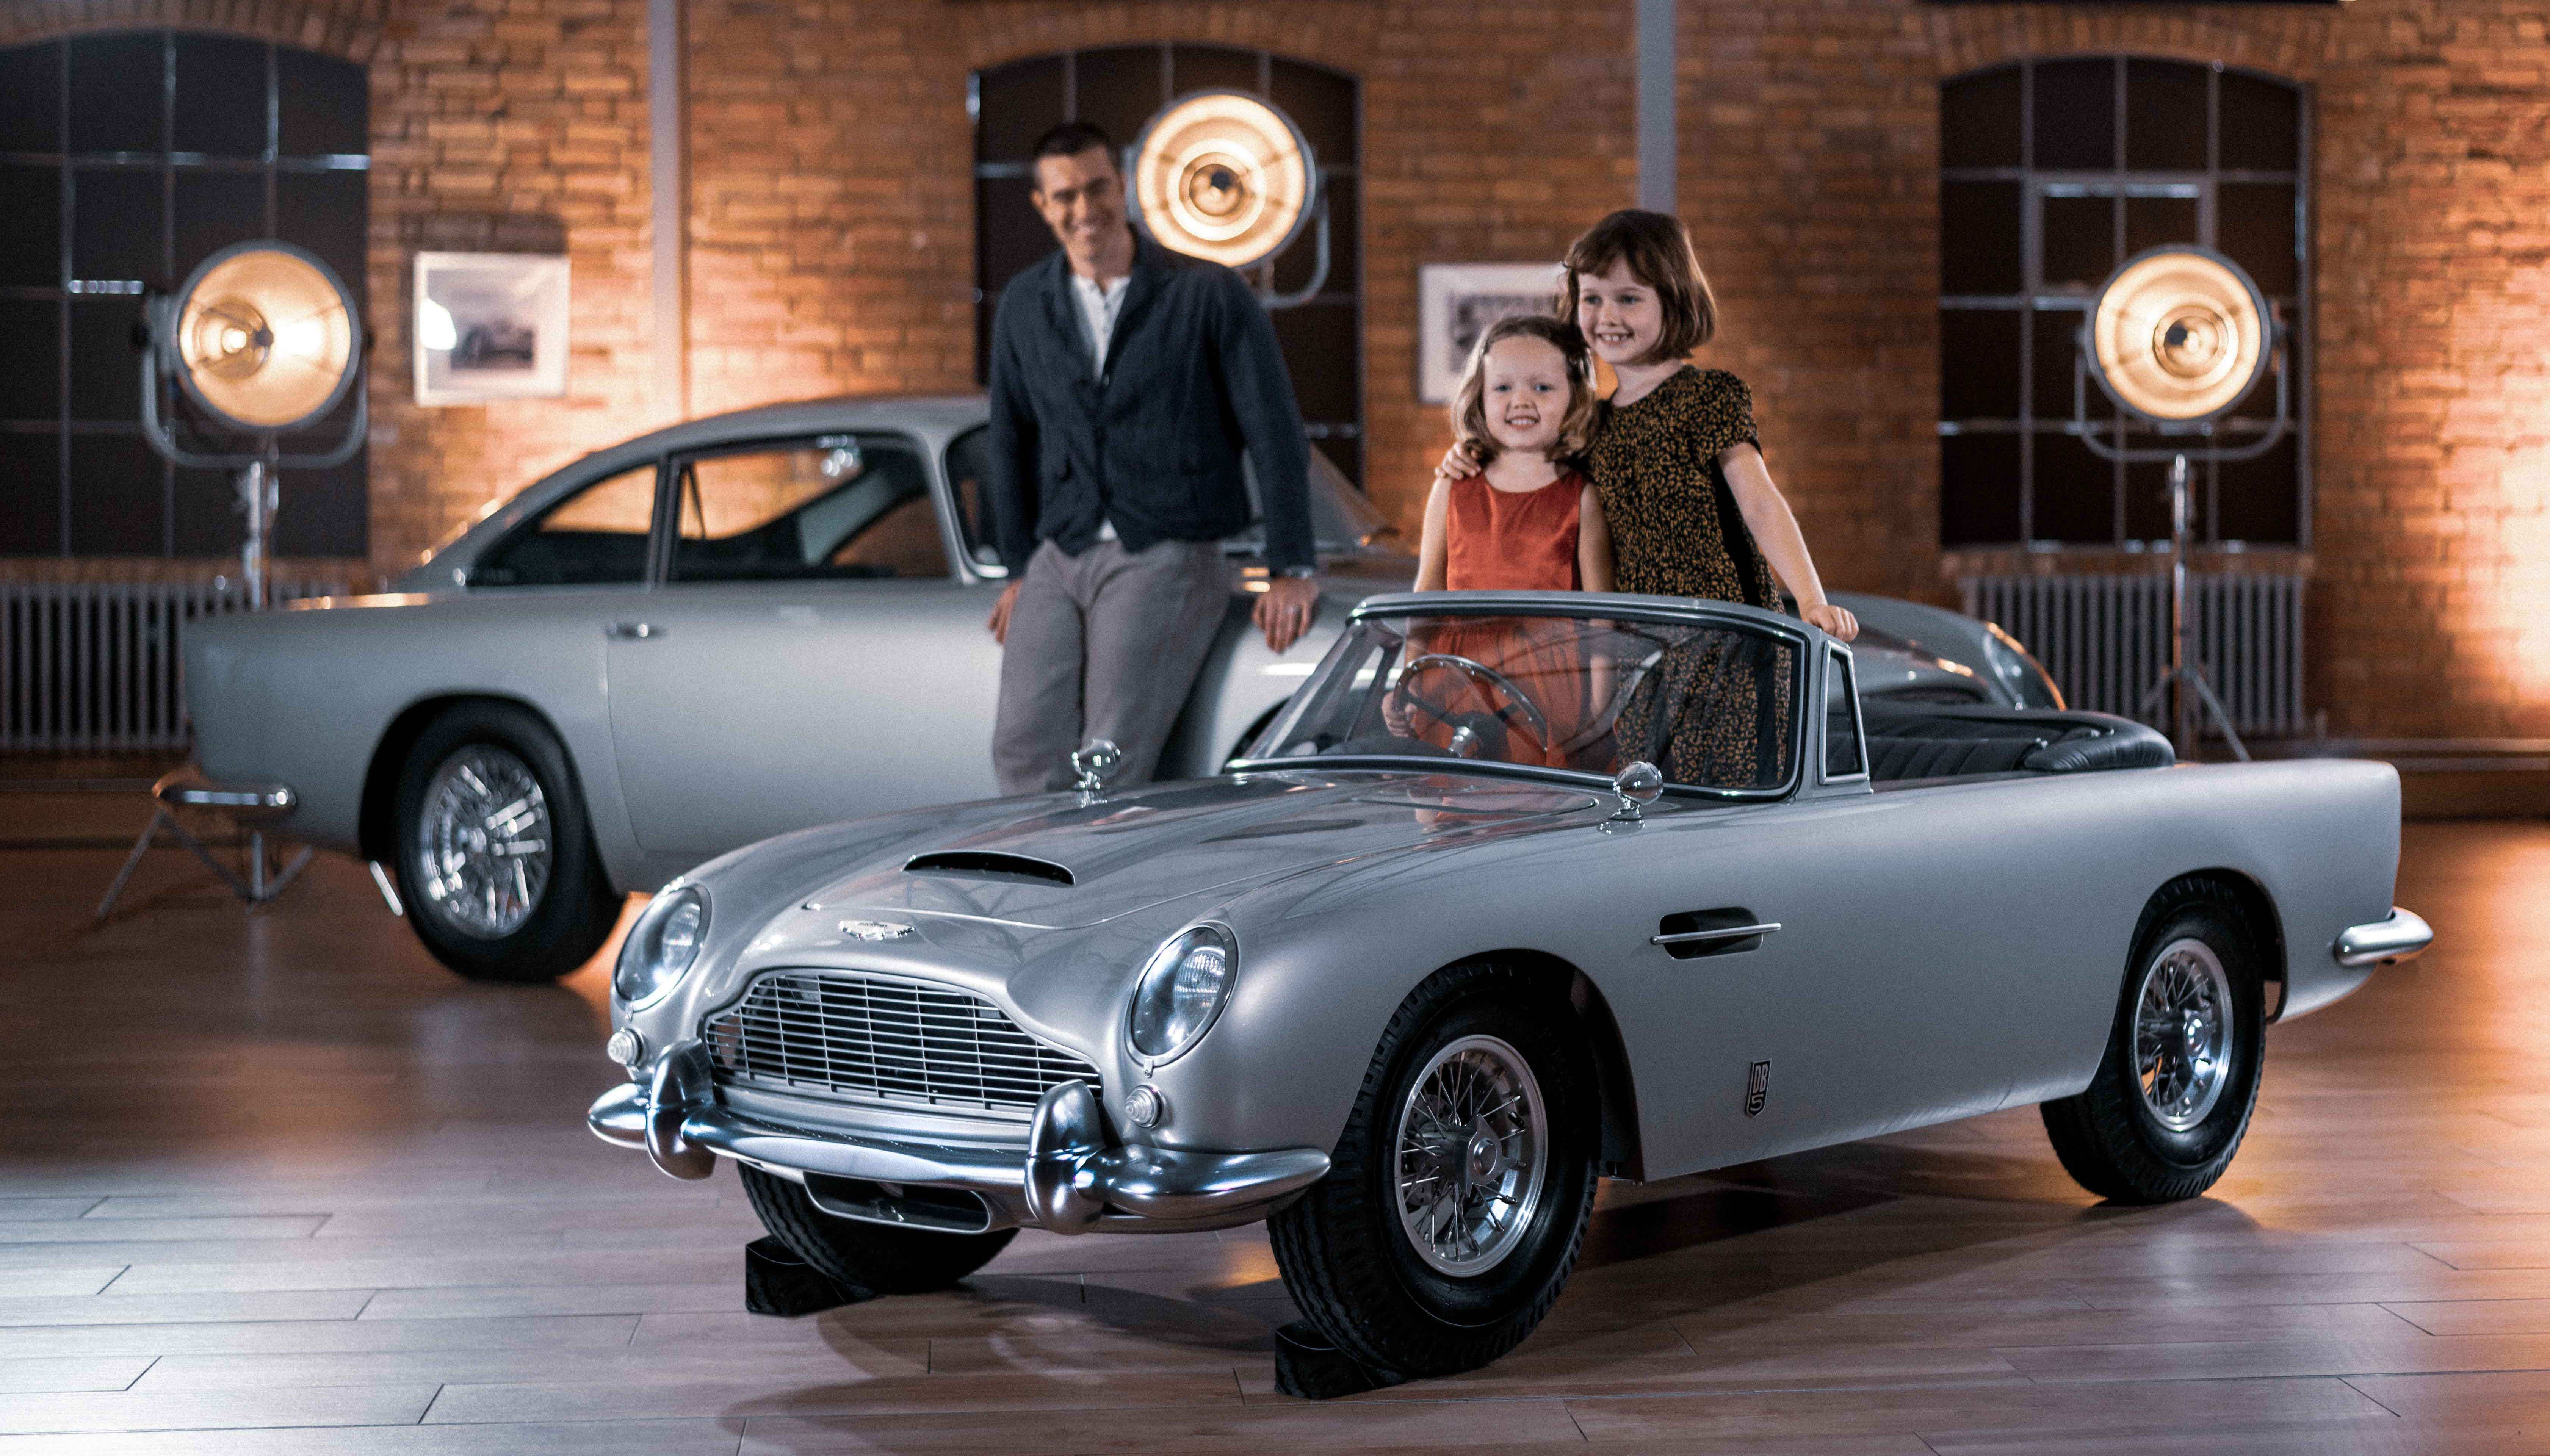 Big Plans For The Little Car Company Ceo Ben Hedley On The Aston Martin Db5 Junior More Auto Futures